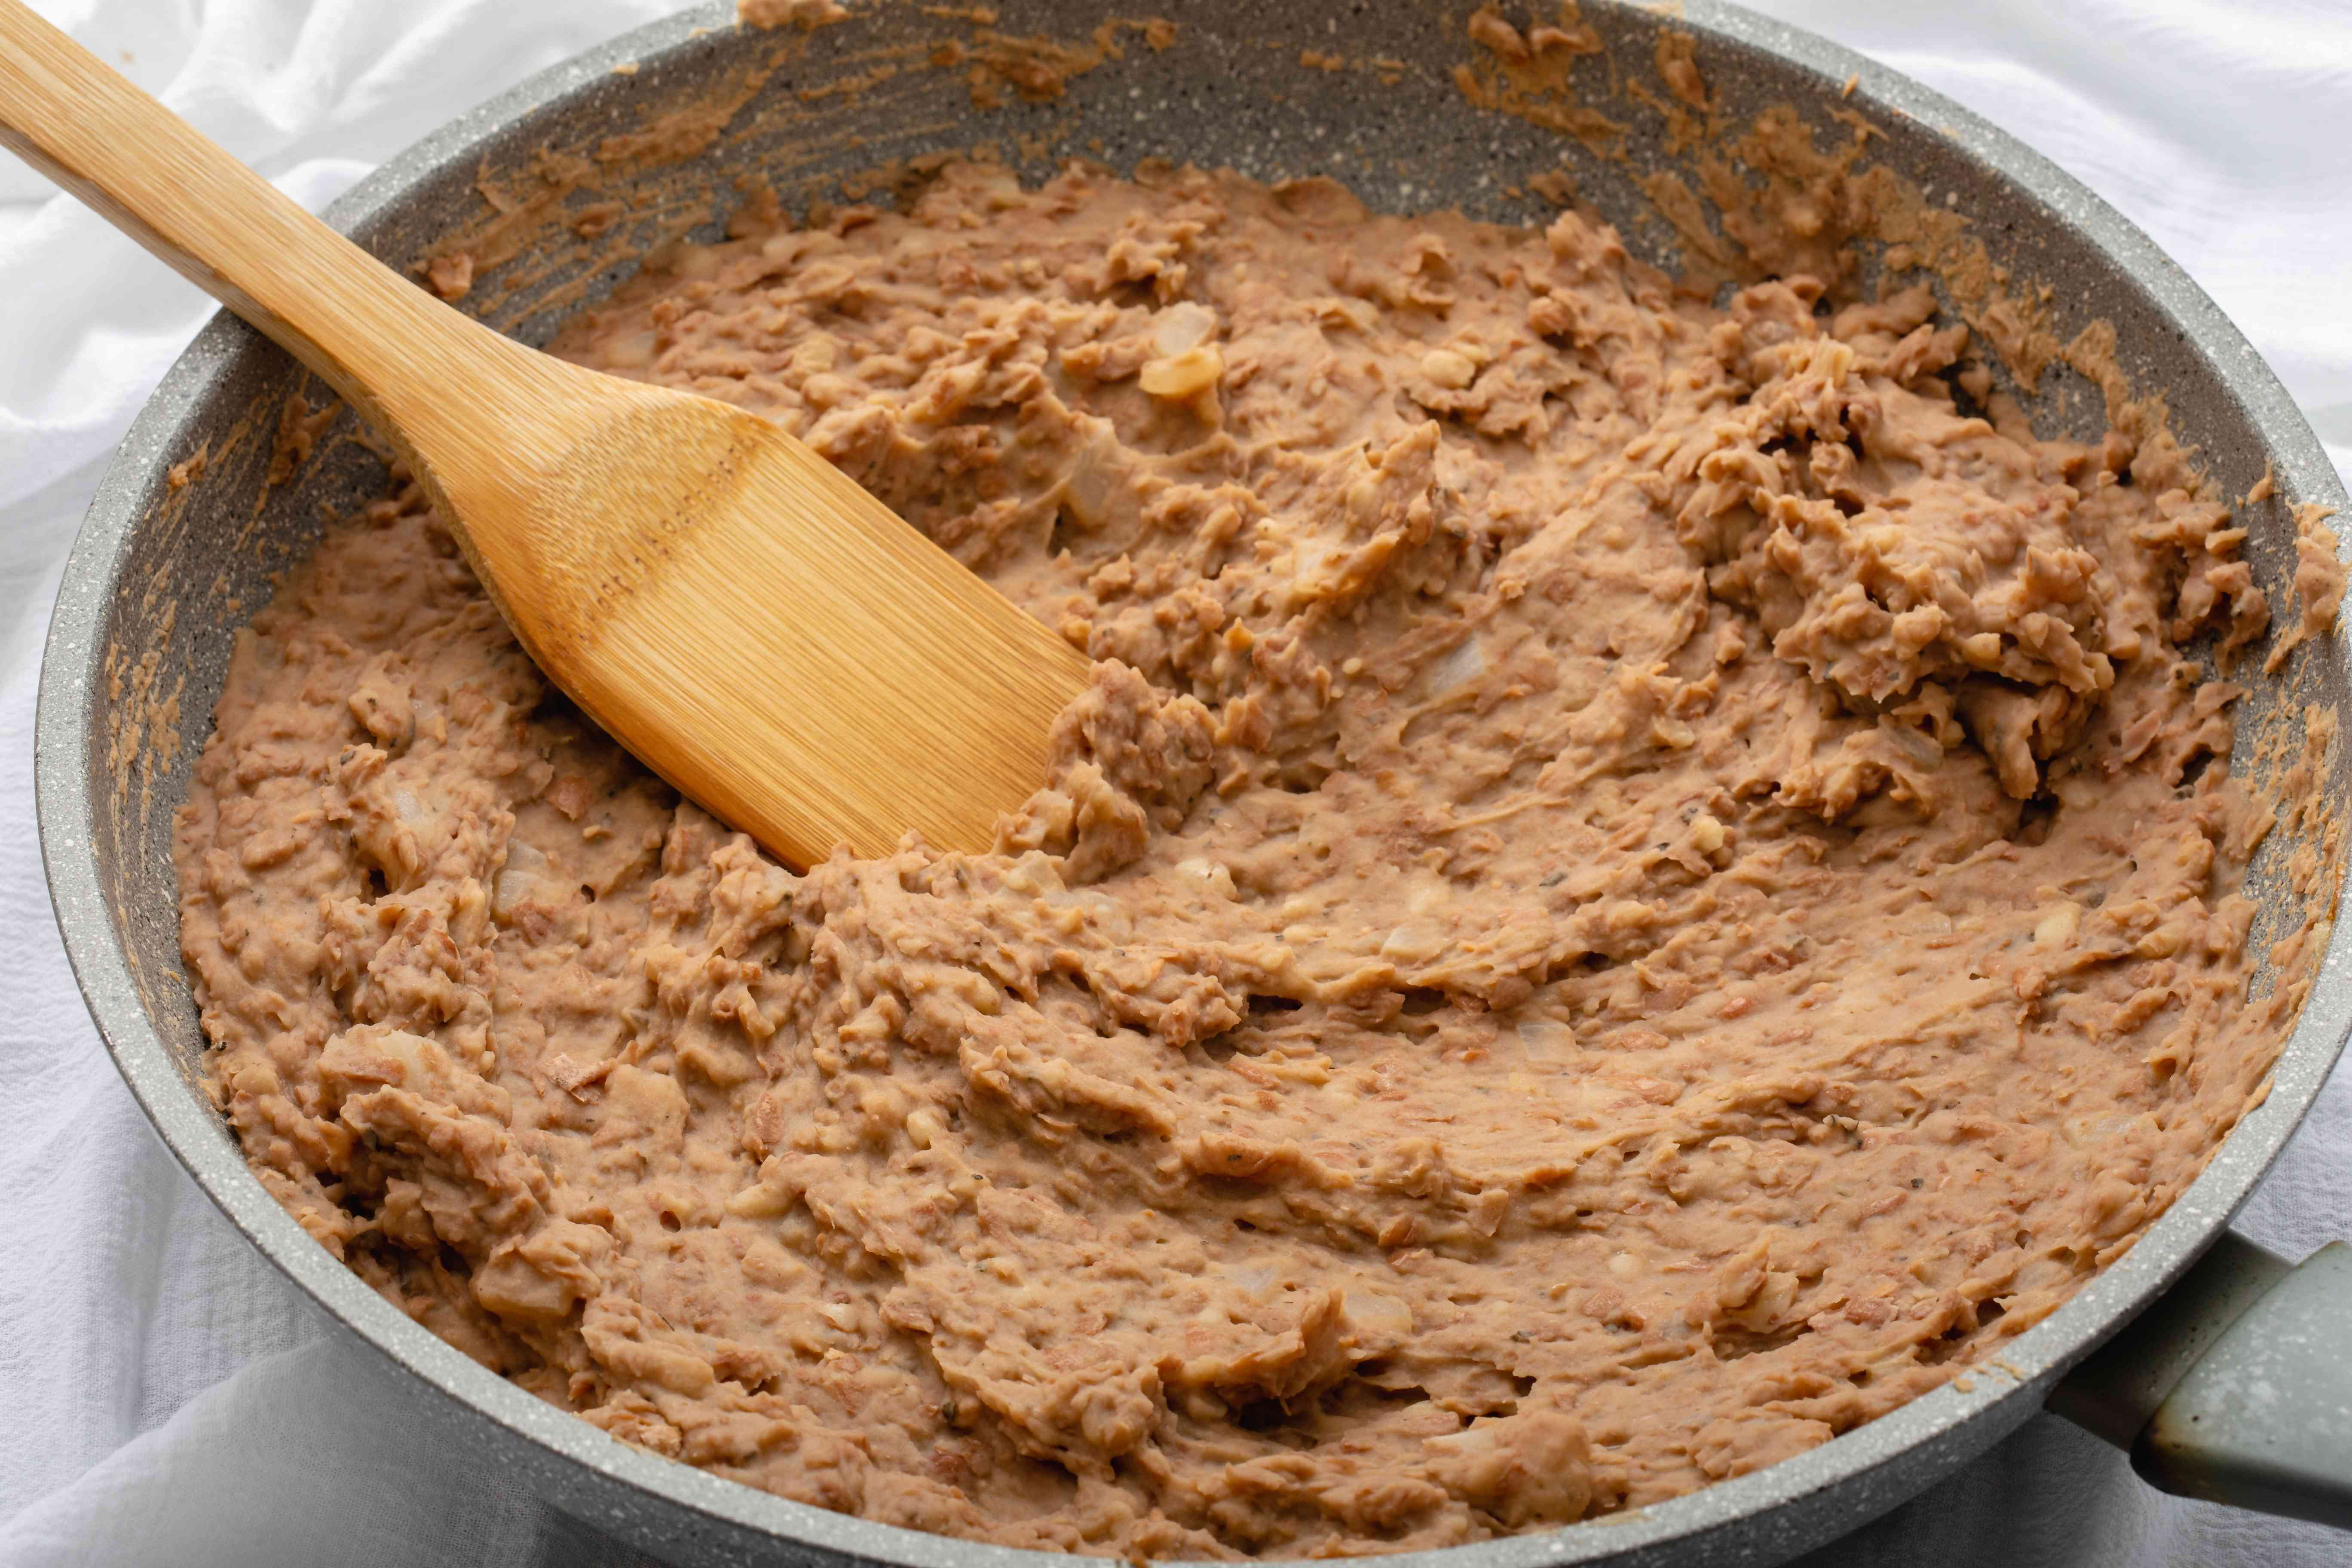 A large bowl of homemade refried beans and a wooden utensil.